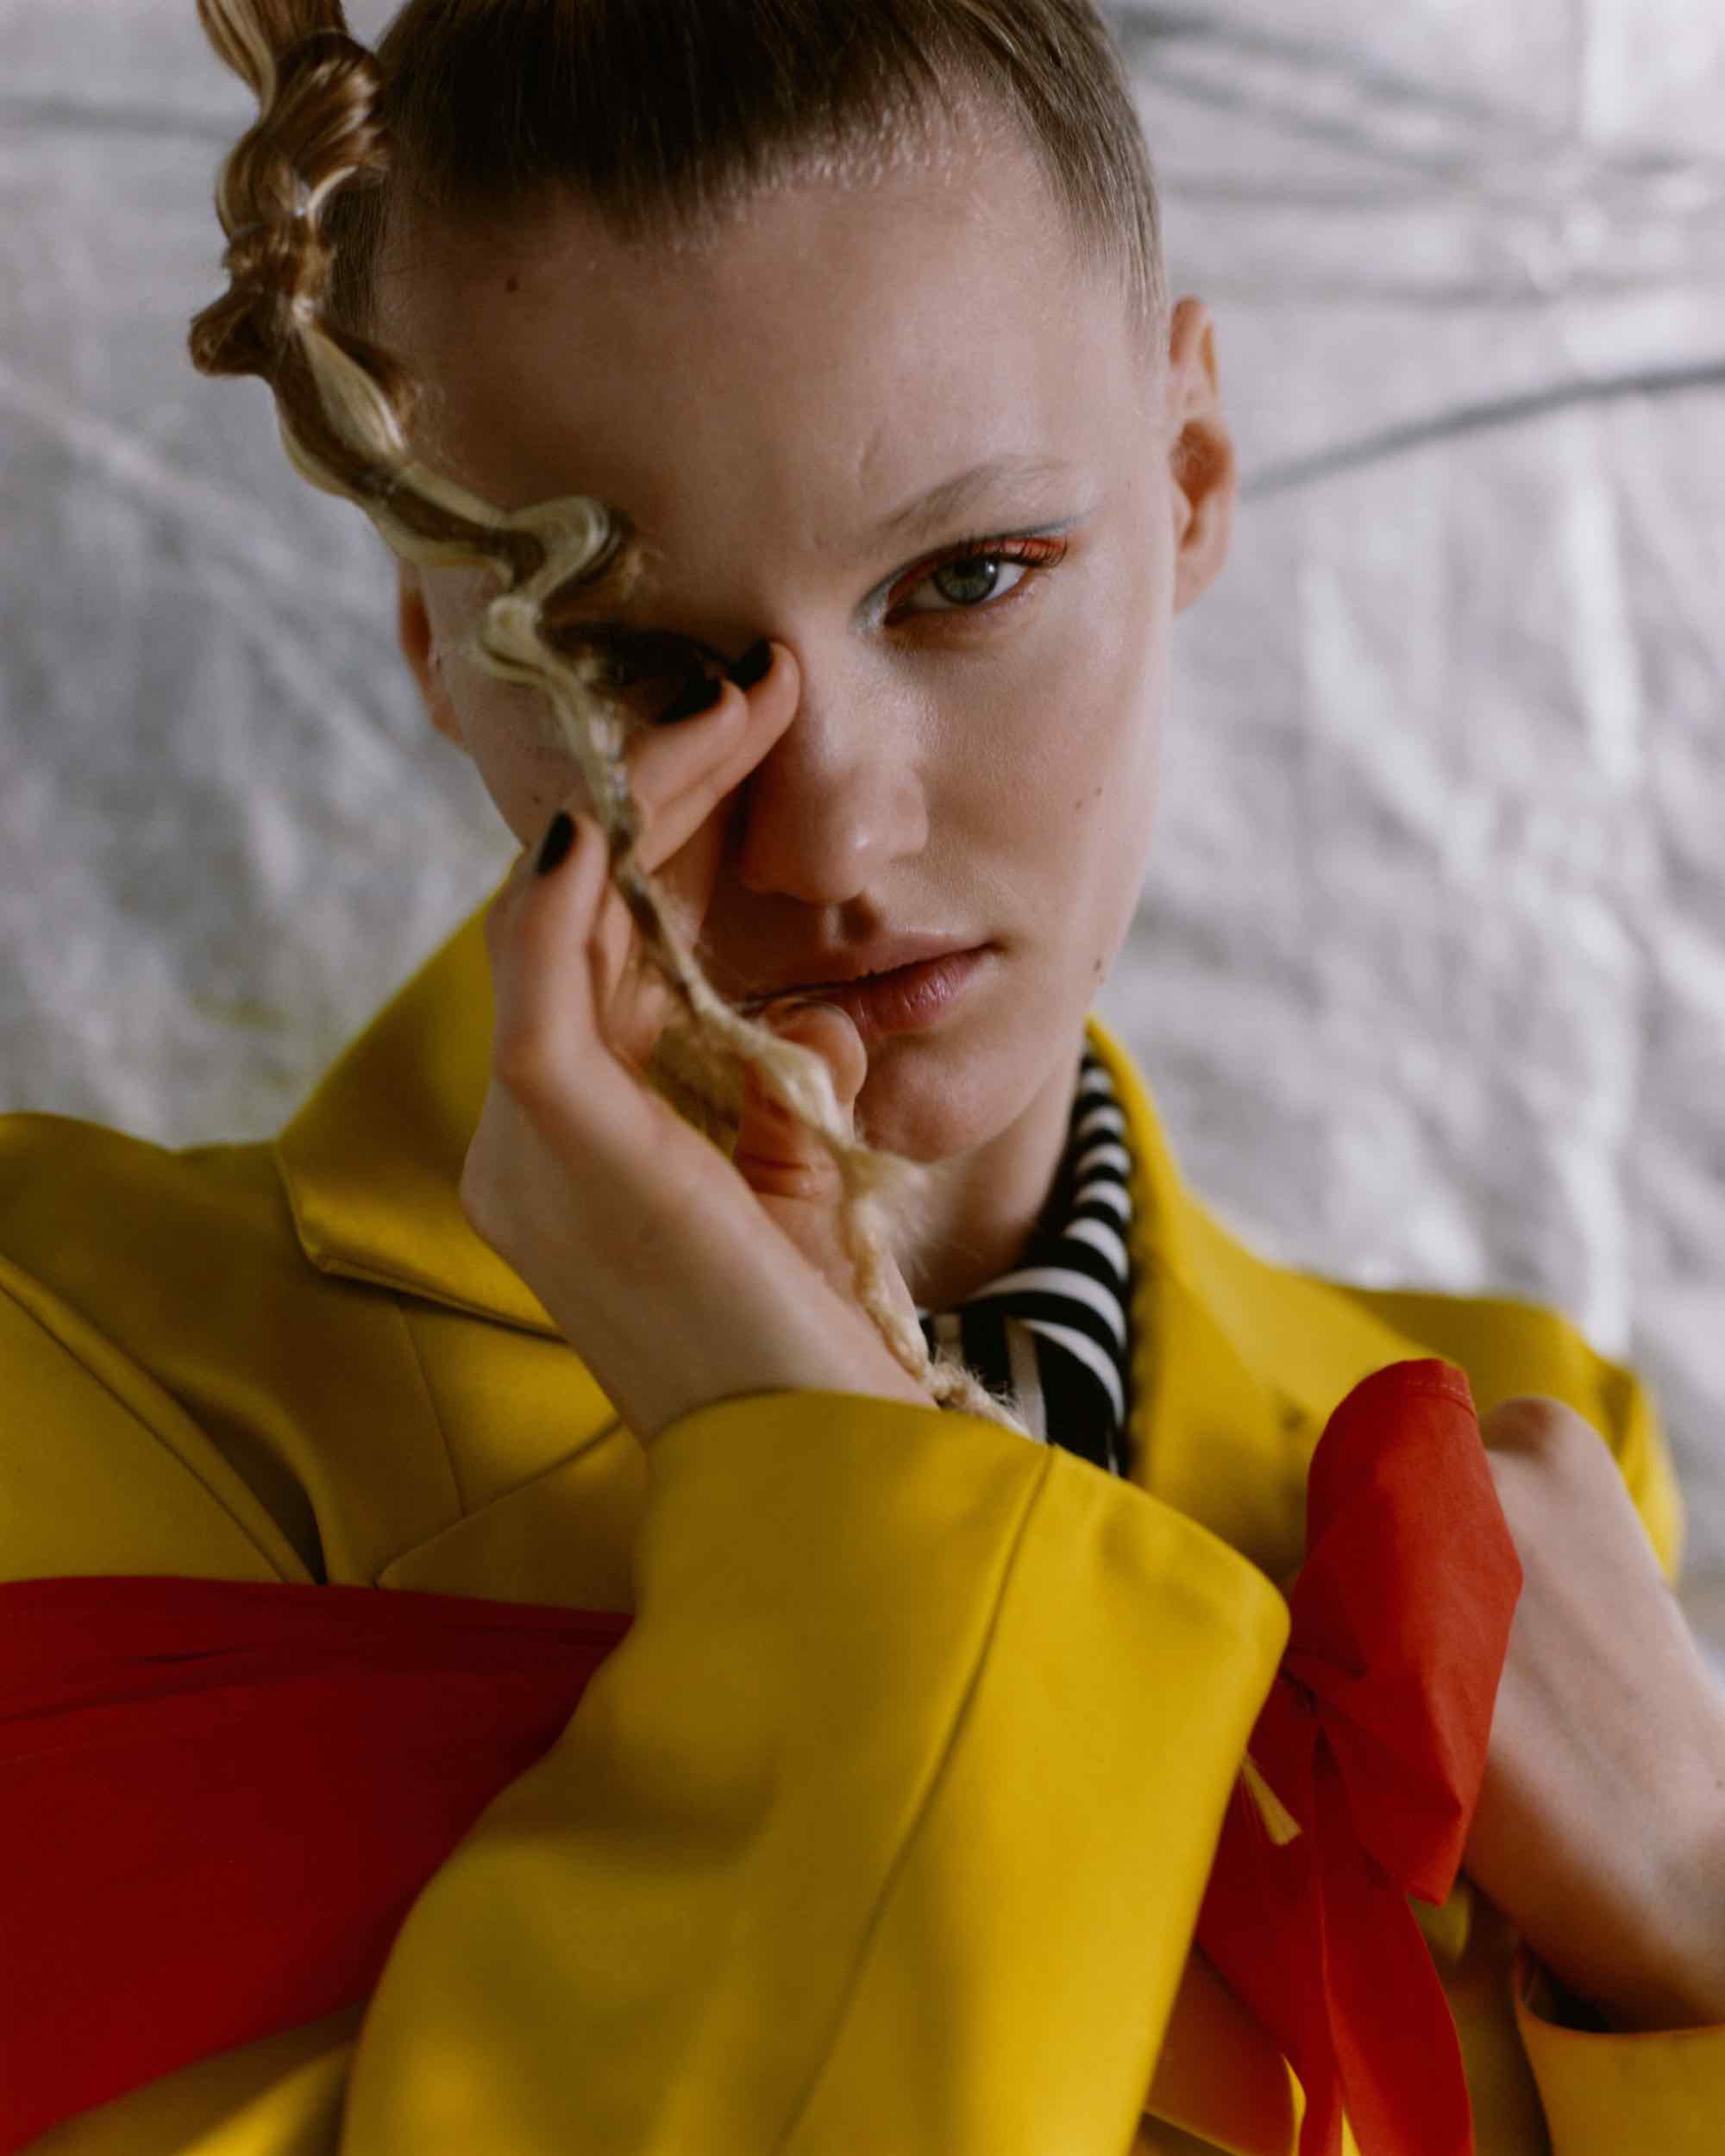 Intergalactic editorial from Spring 19 issue of Wonderland hair plait